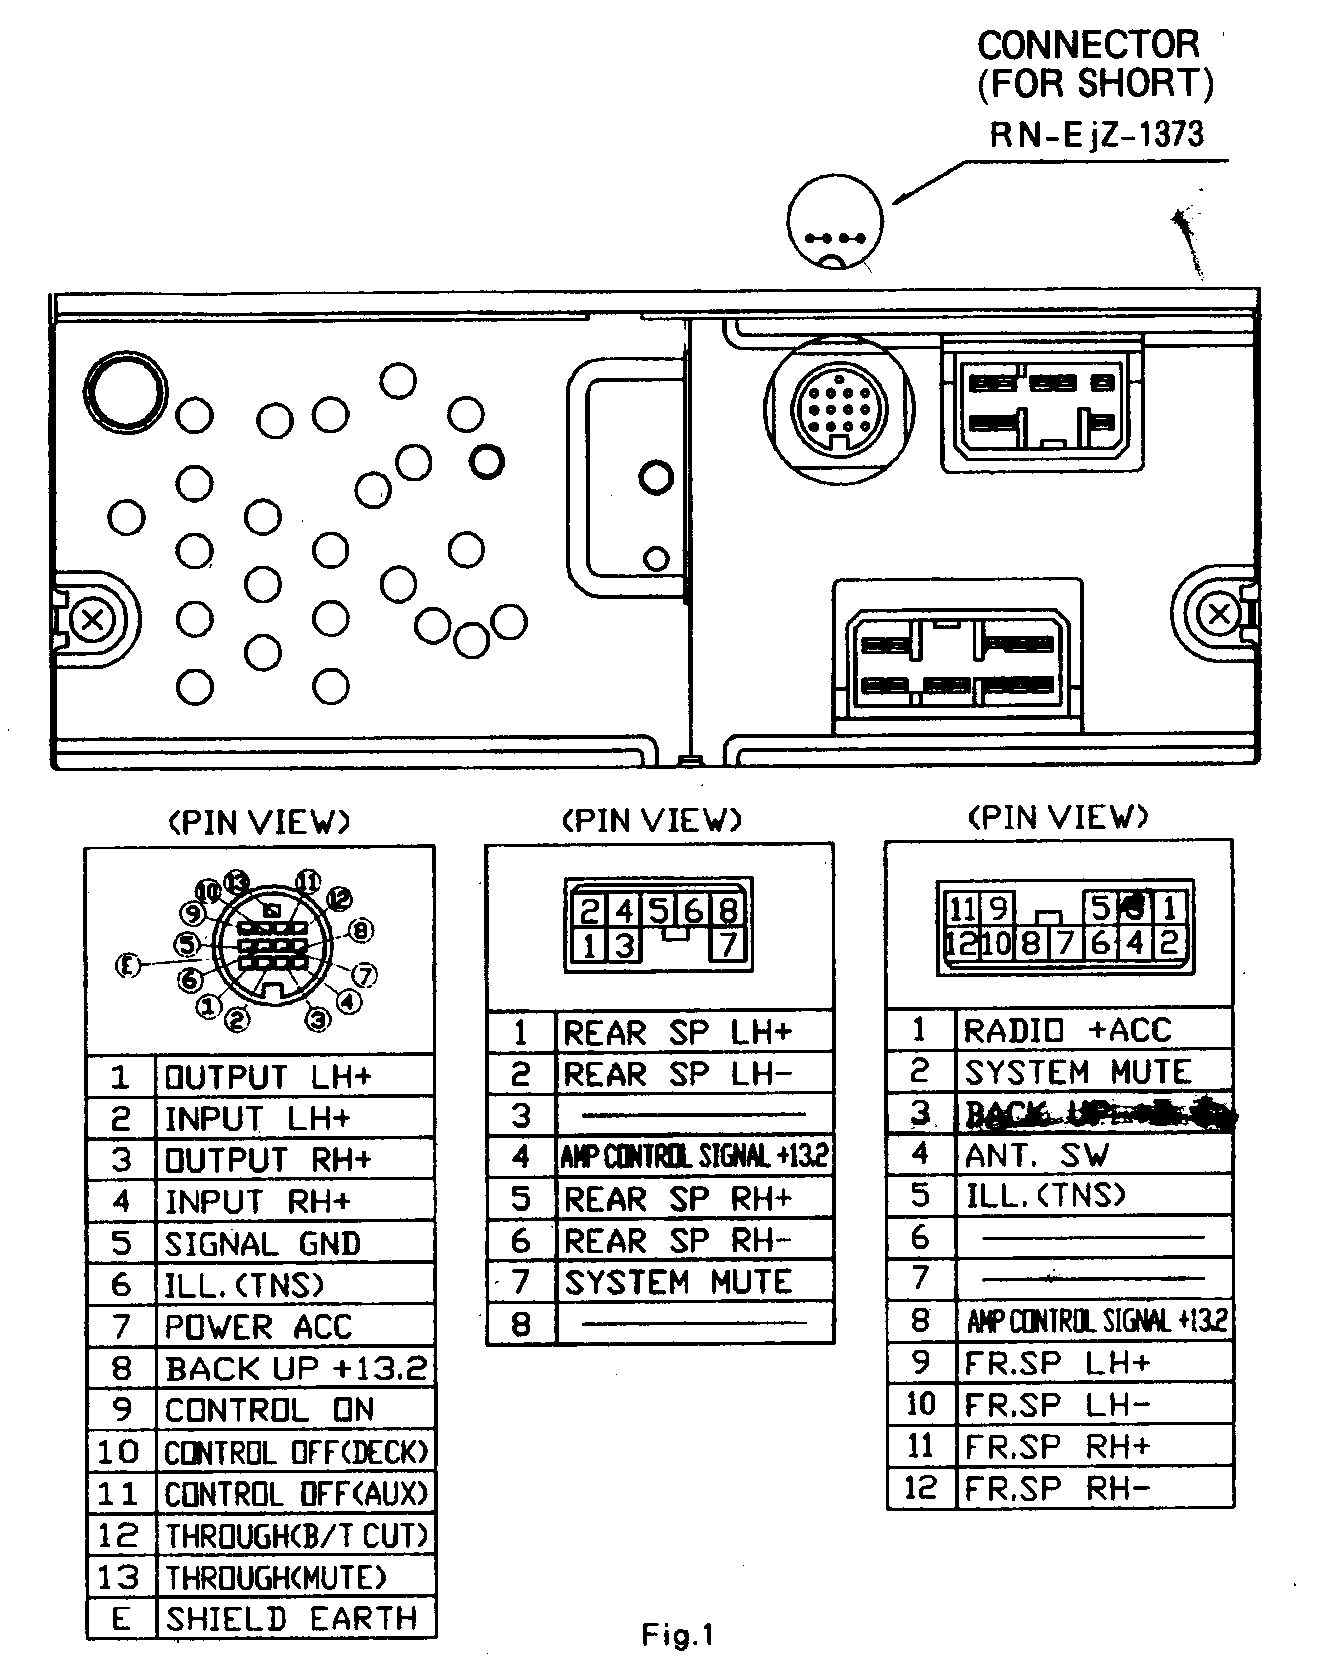 MAZDA Car Radio Wiring Connector on 2002 Mazda Millenia Wiring Diagram